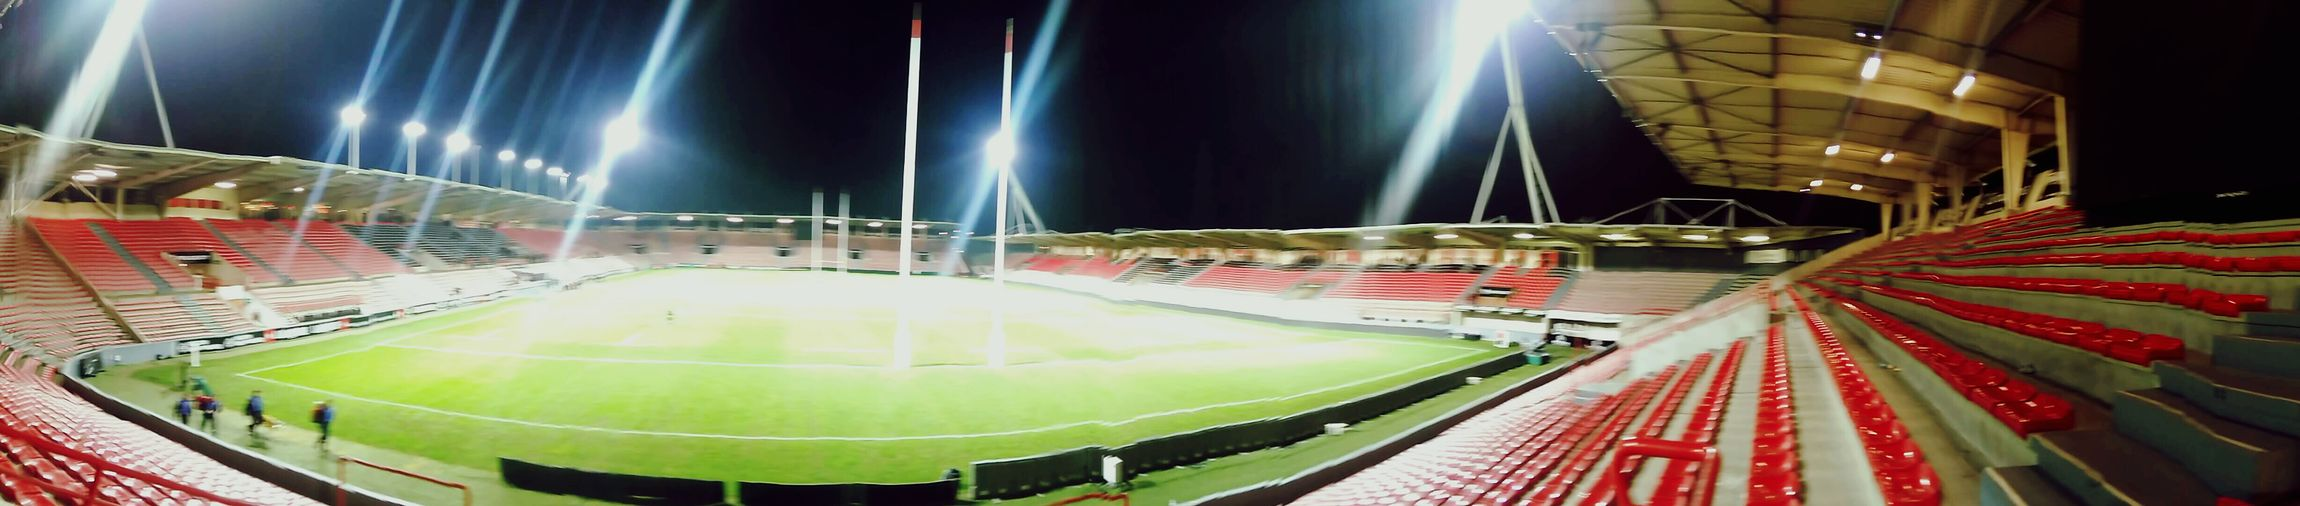 Toulouse Rugby TIME Rugby Stadium Stade Ernestwallon BigBoss